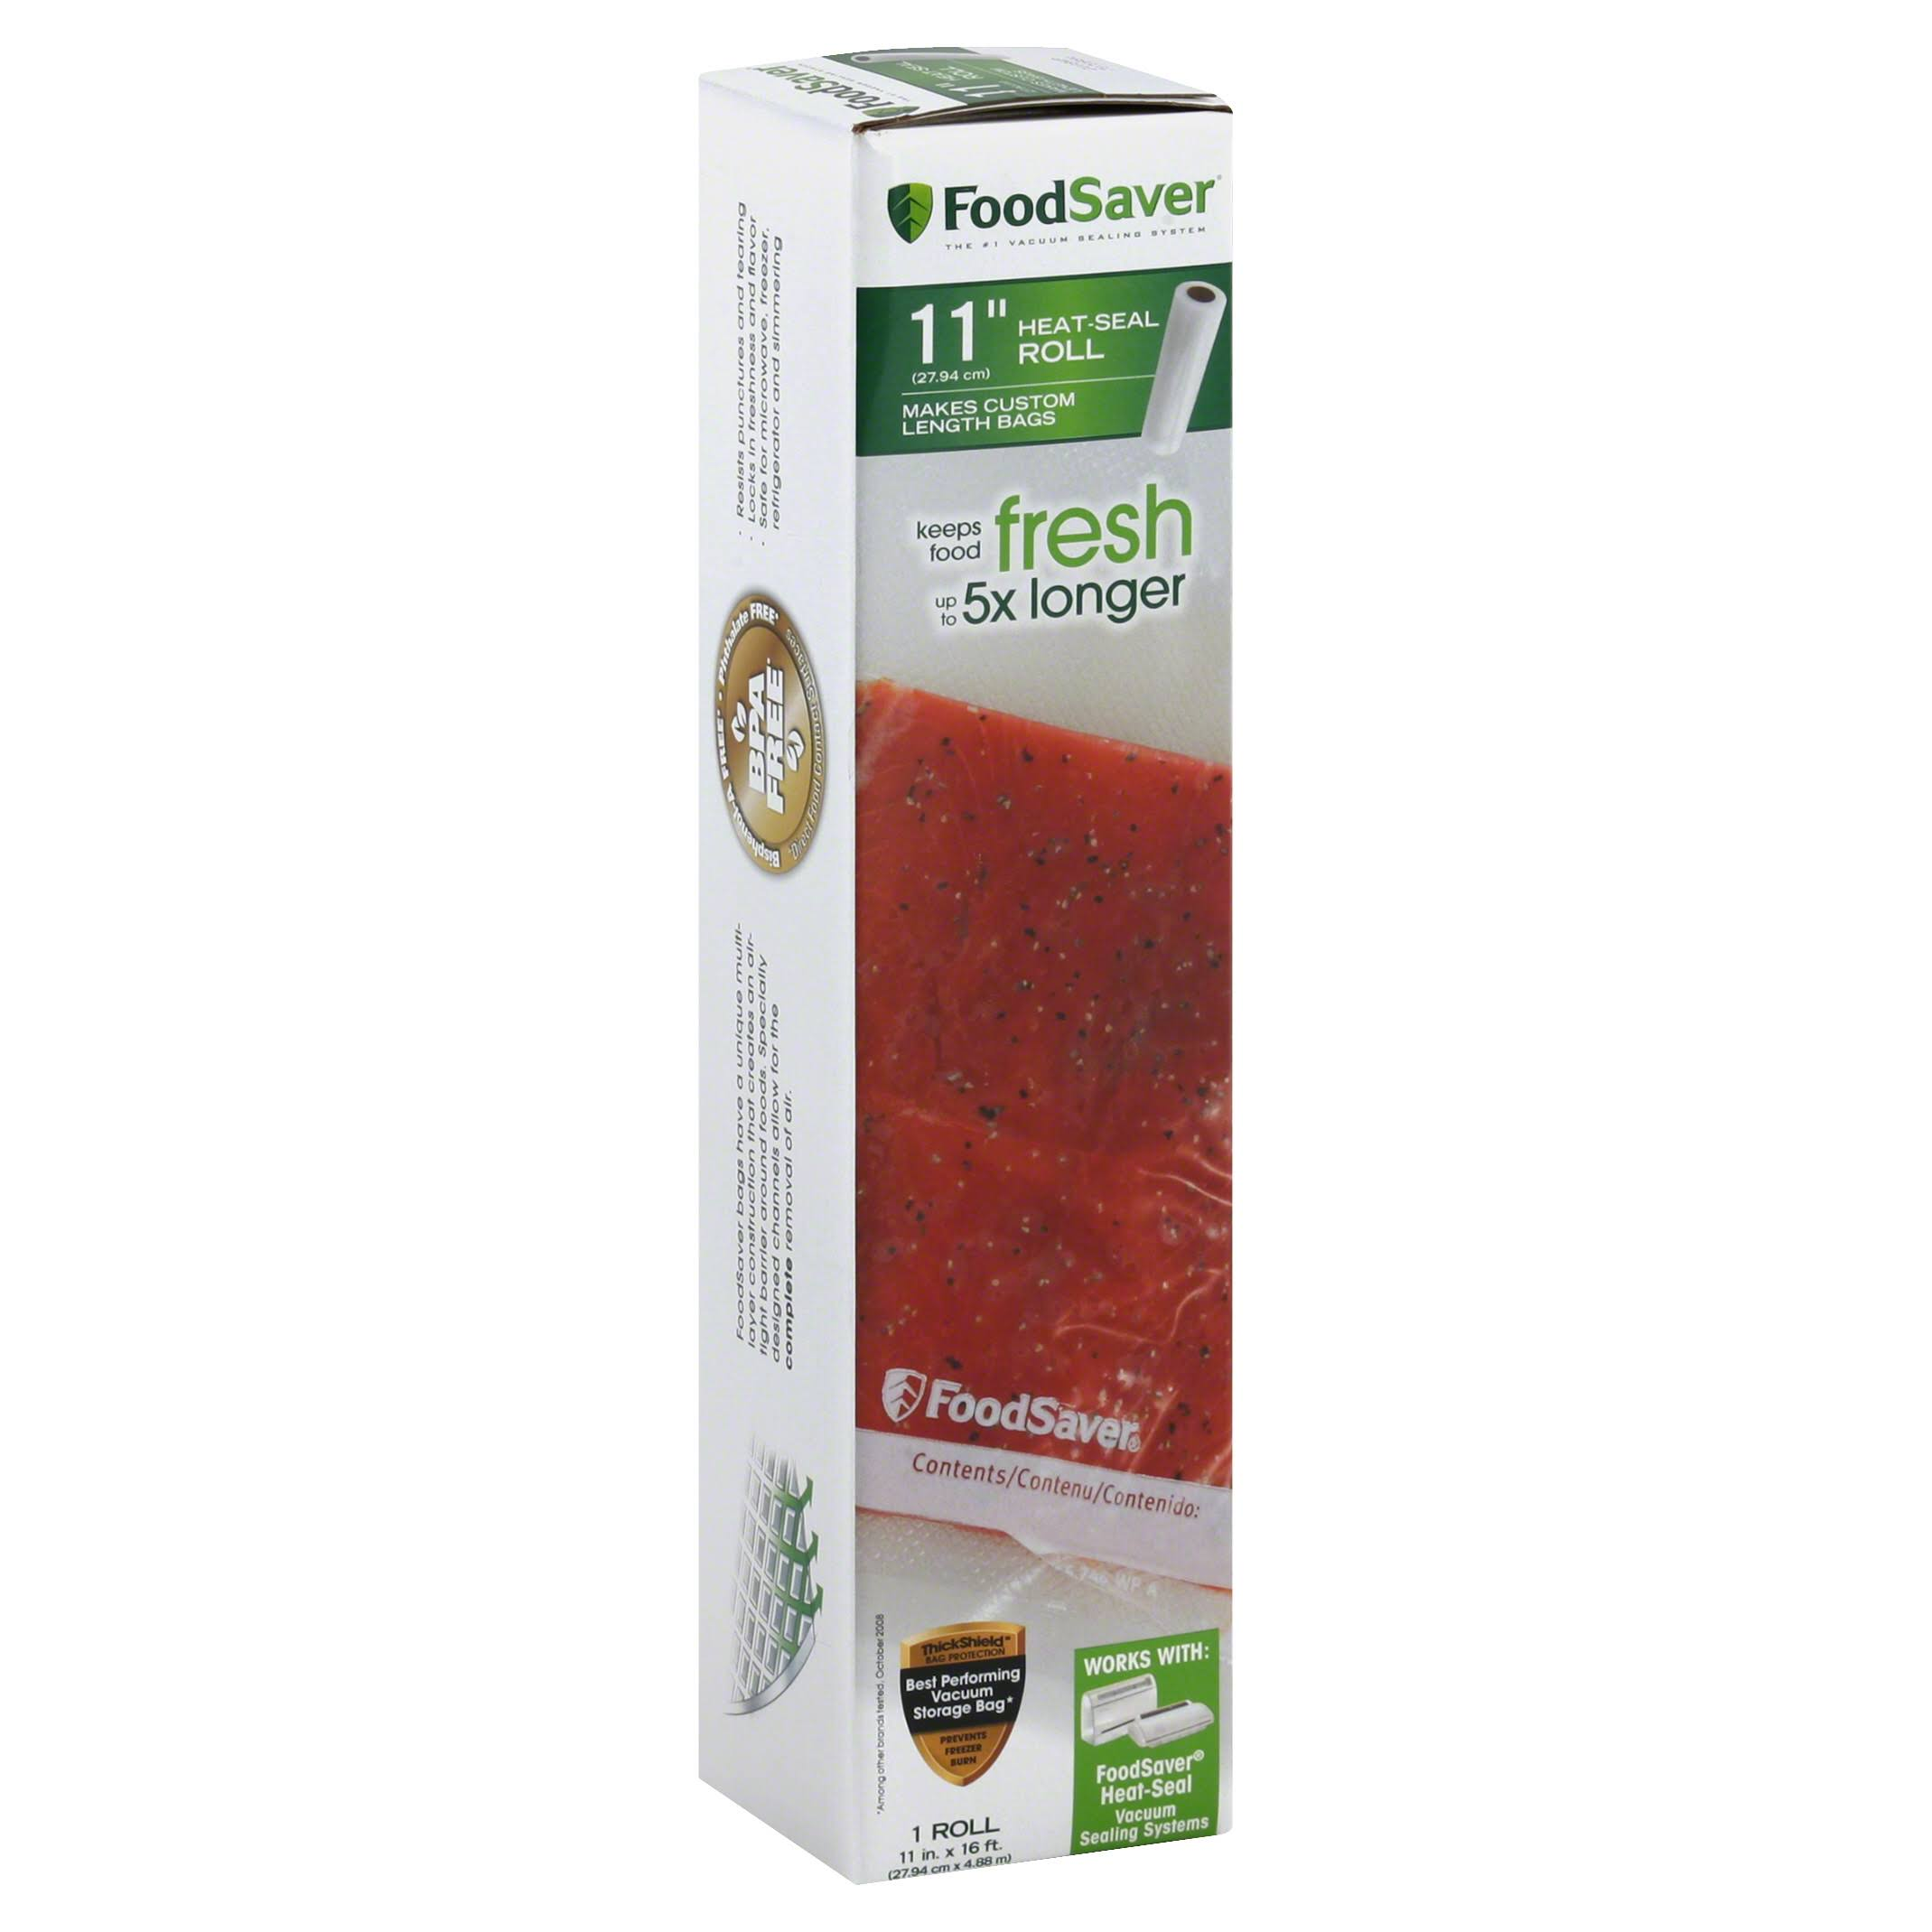 Foodsaver Heat-seal Roll - 11""